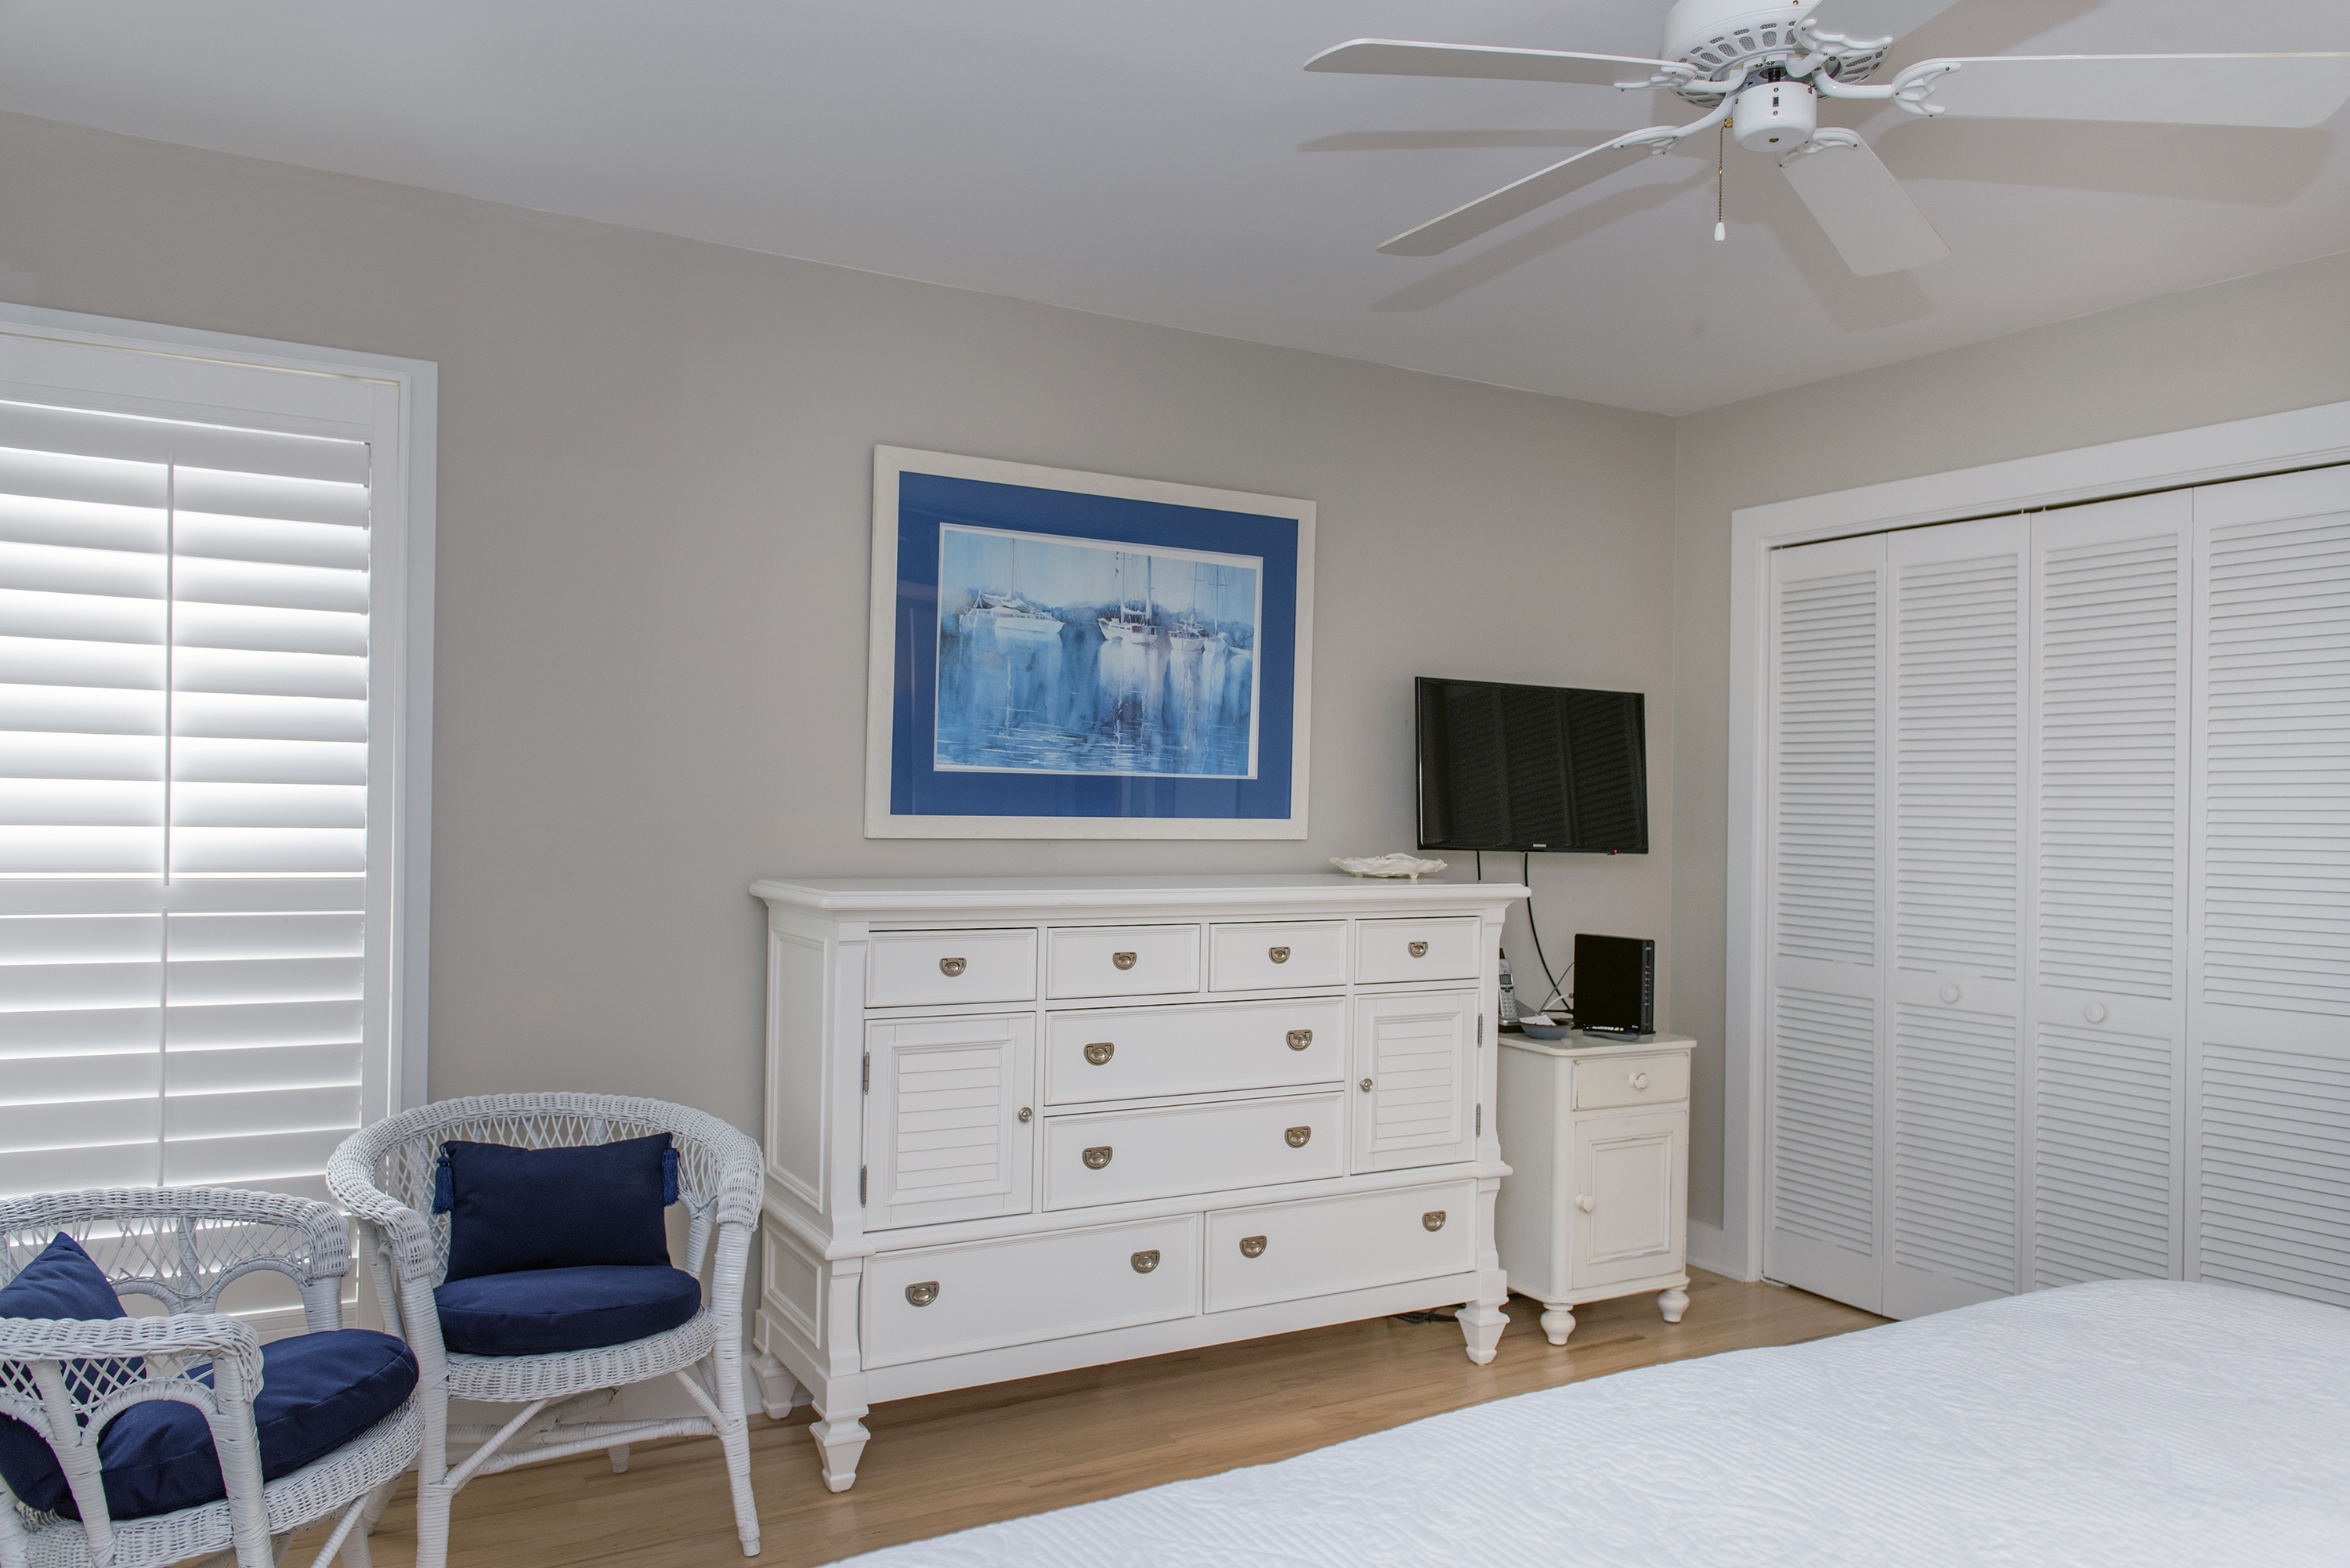 The second bedroom has a mounted flat screen HDTV with ample closet and drawer space.